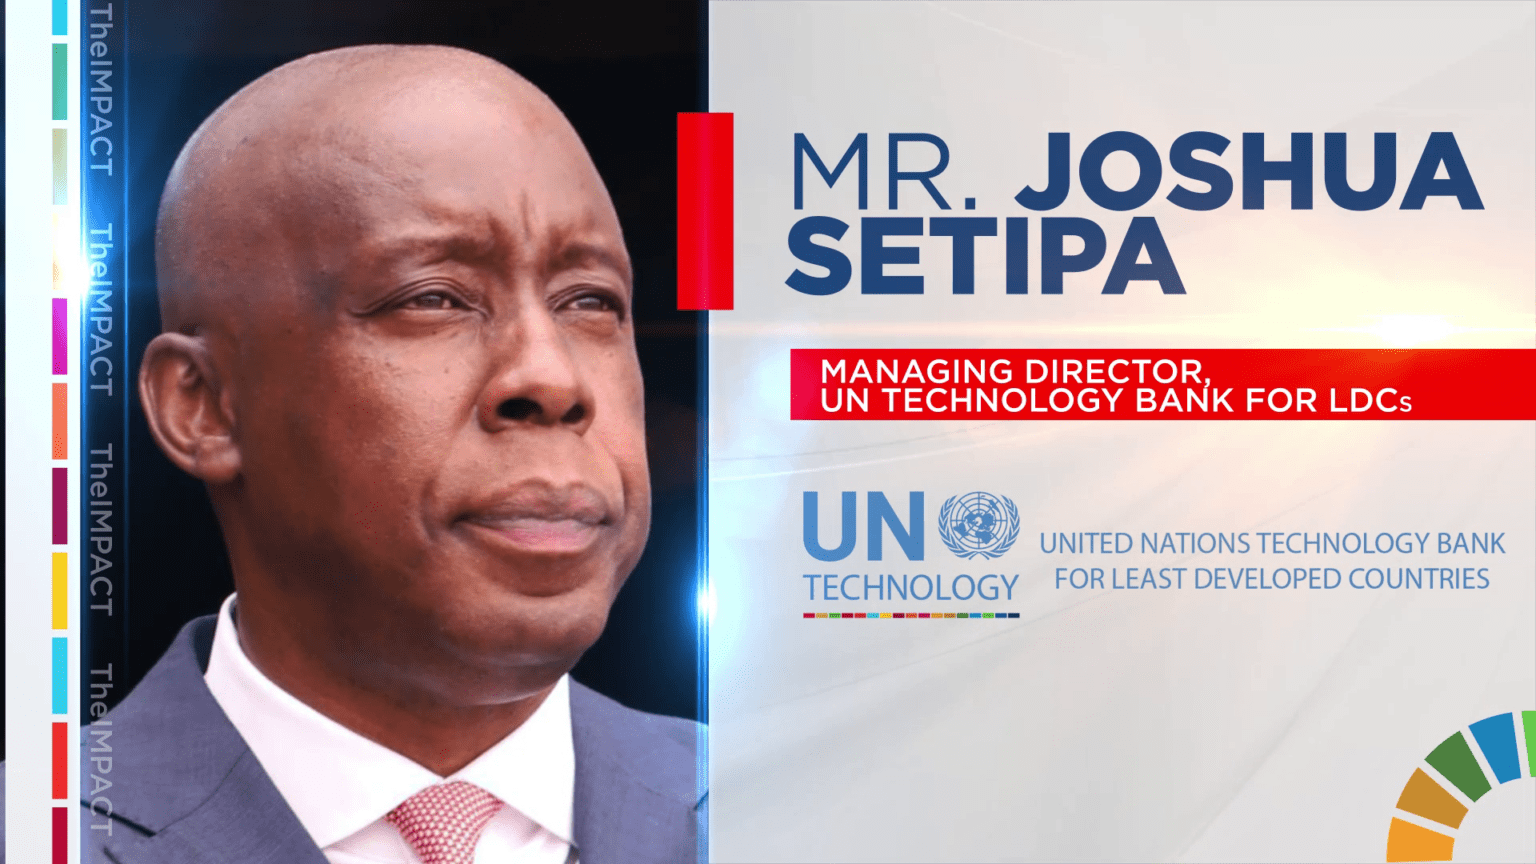 Joshua Setipa - Managing Director - UN Technology Bank